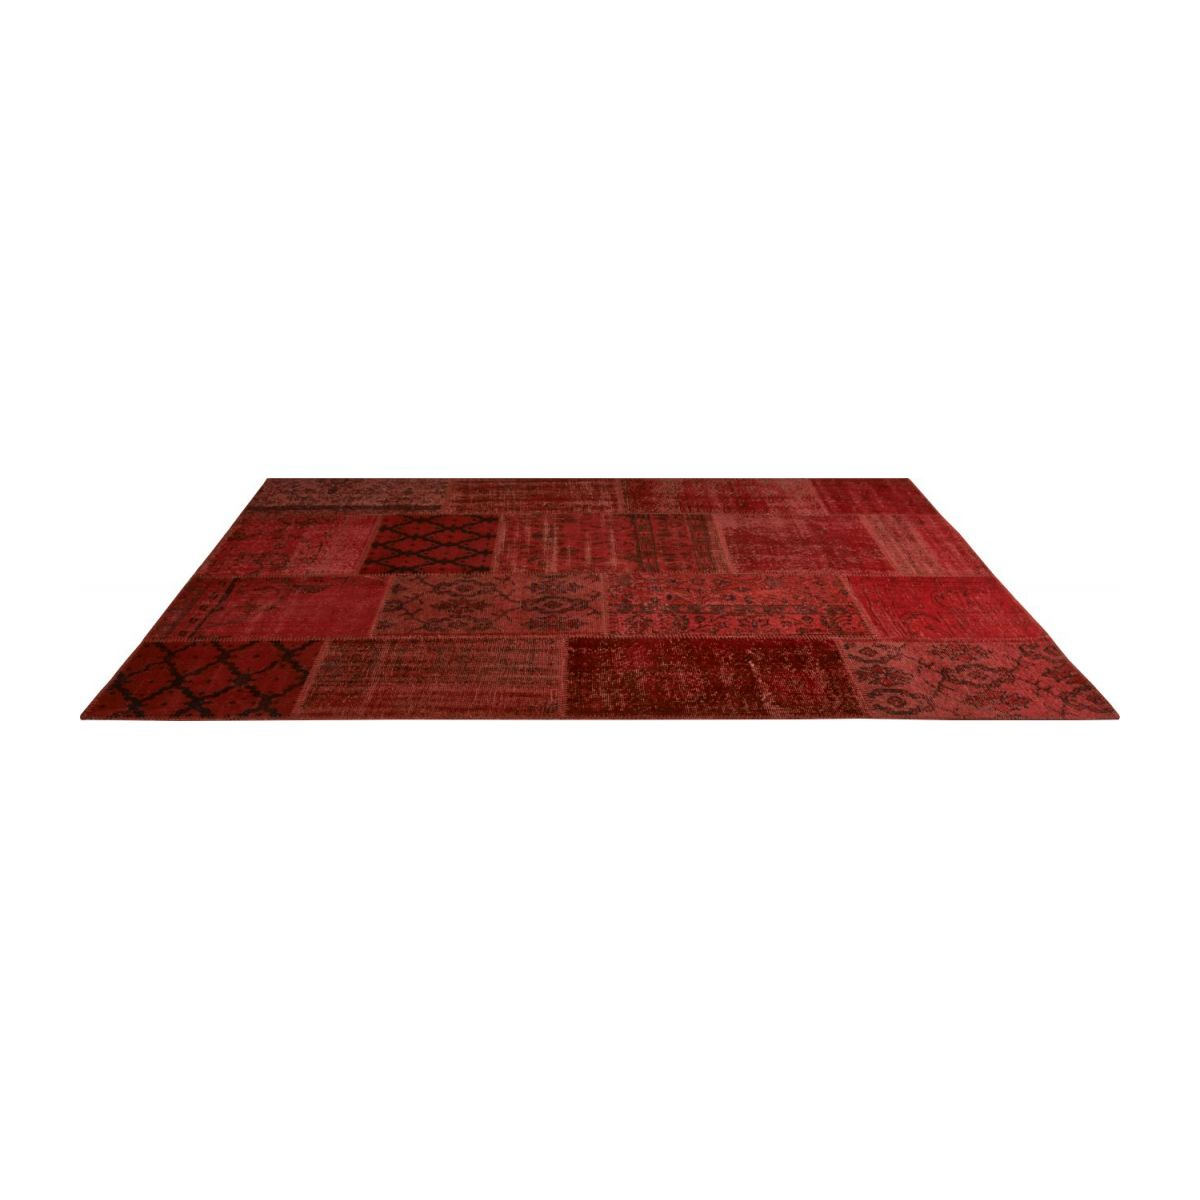 Tapis patchwork rouge n°2